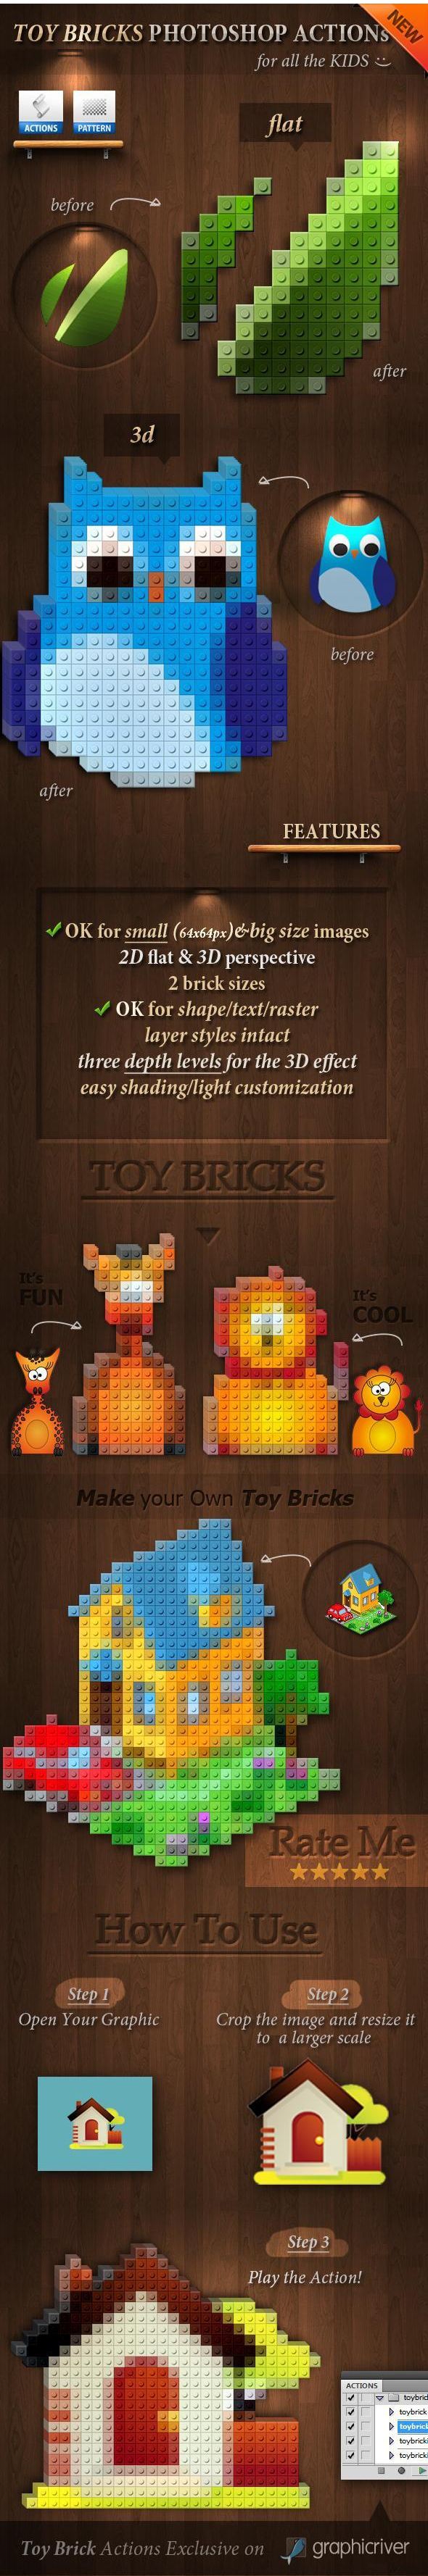 graphicriver_3d_toy_bricks_photoshop_actions_3924994